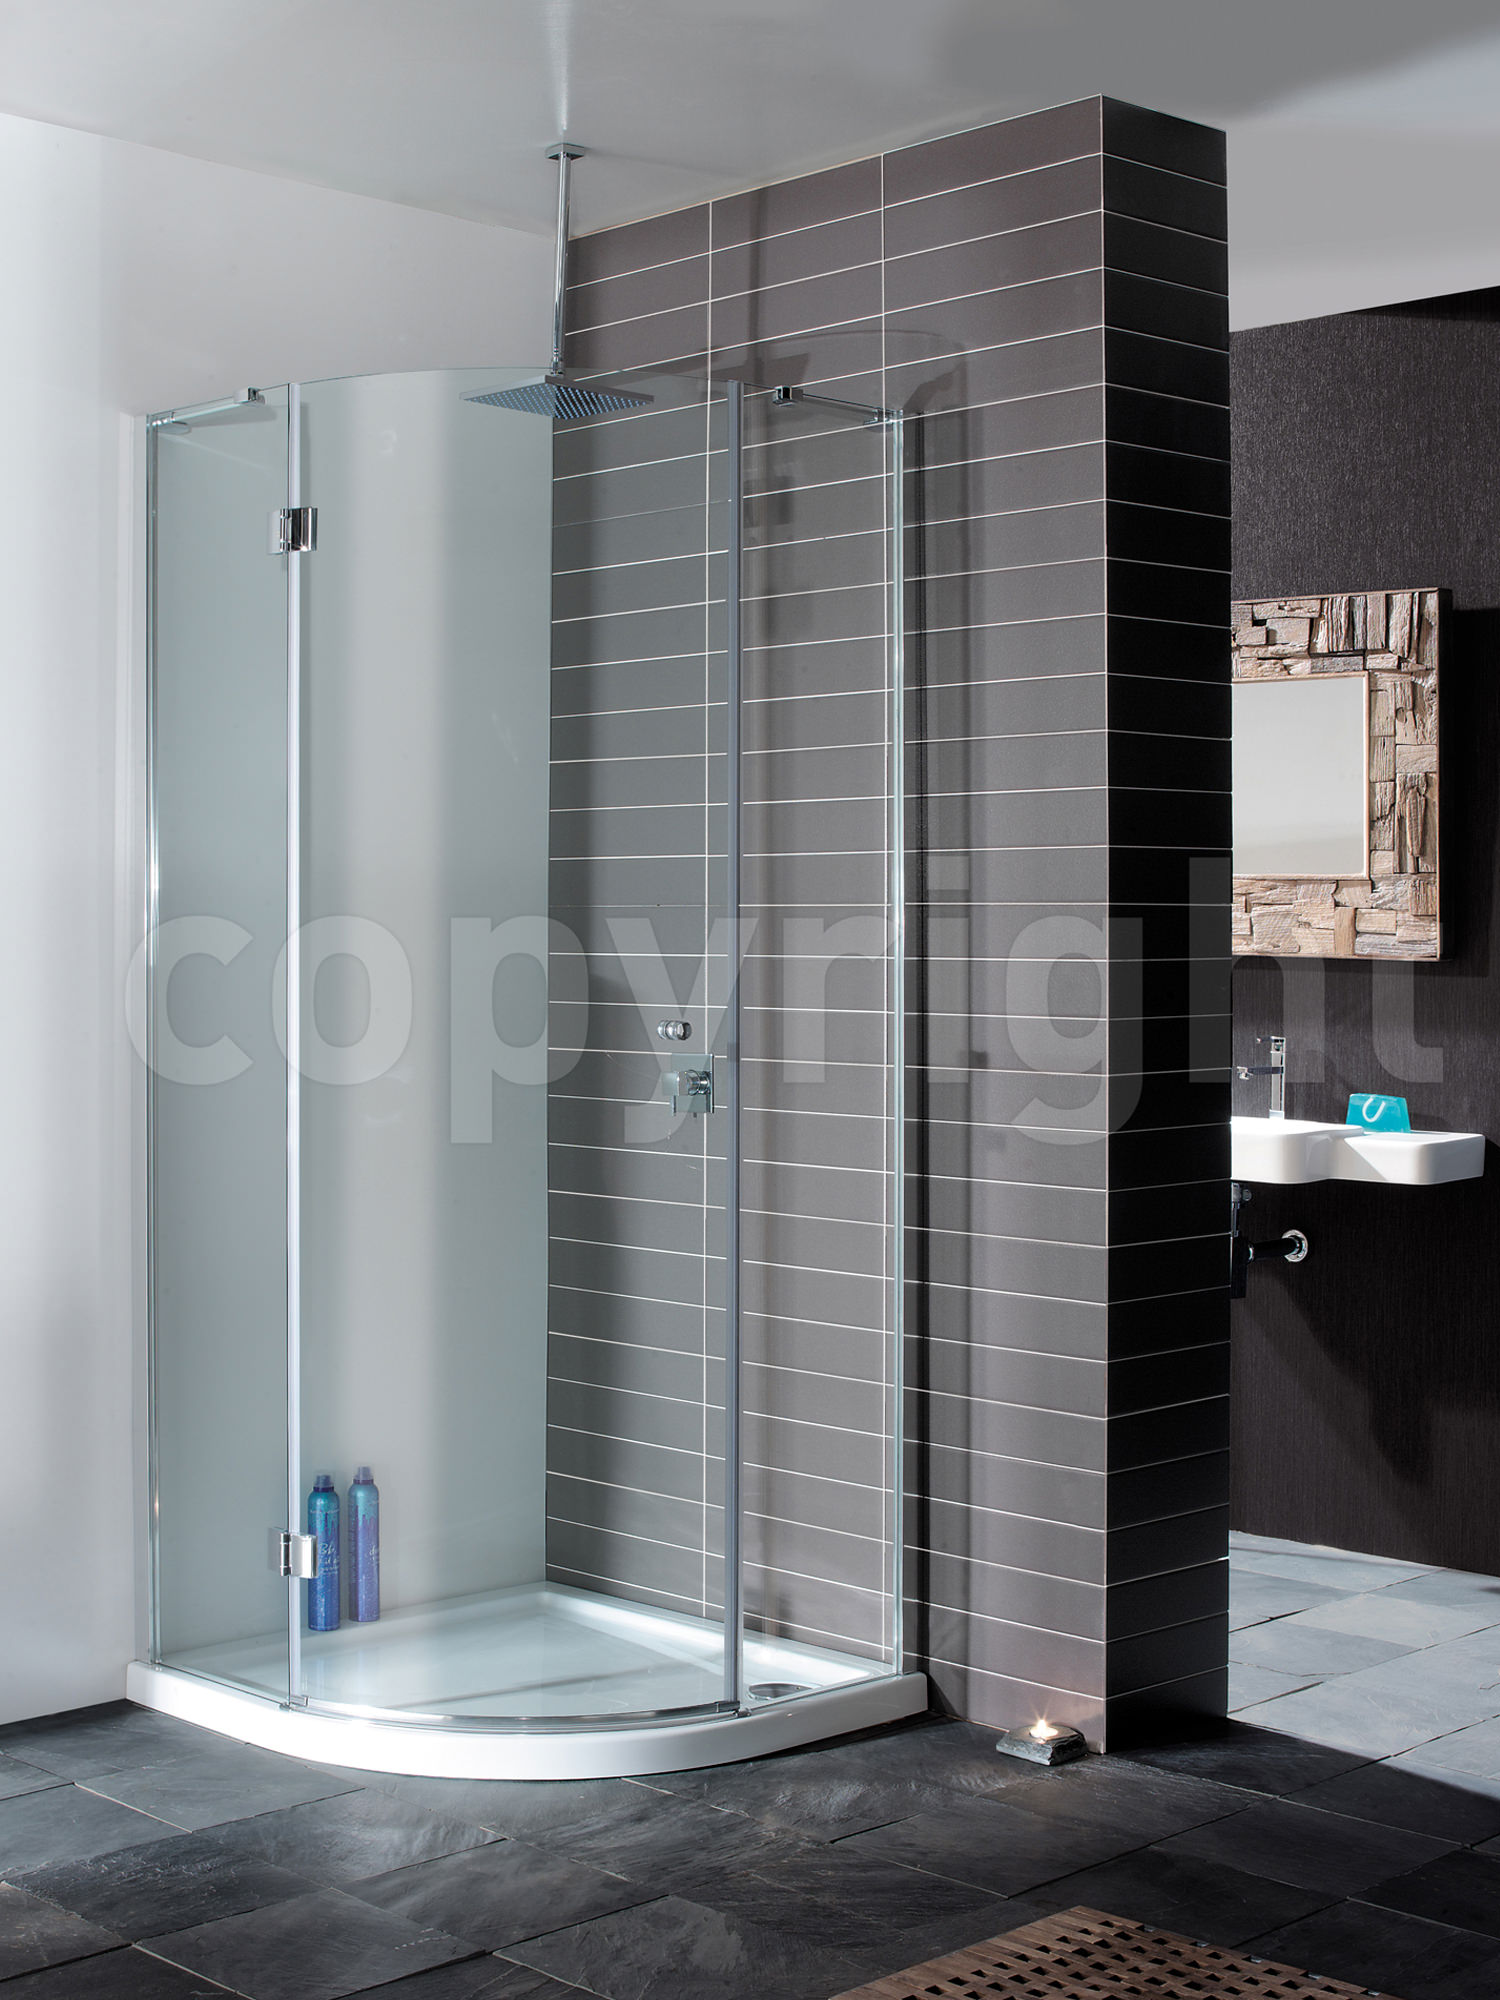 Bathroom glass door design - Simpsons Design Single Door Shower Quadrant 800mm